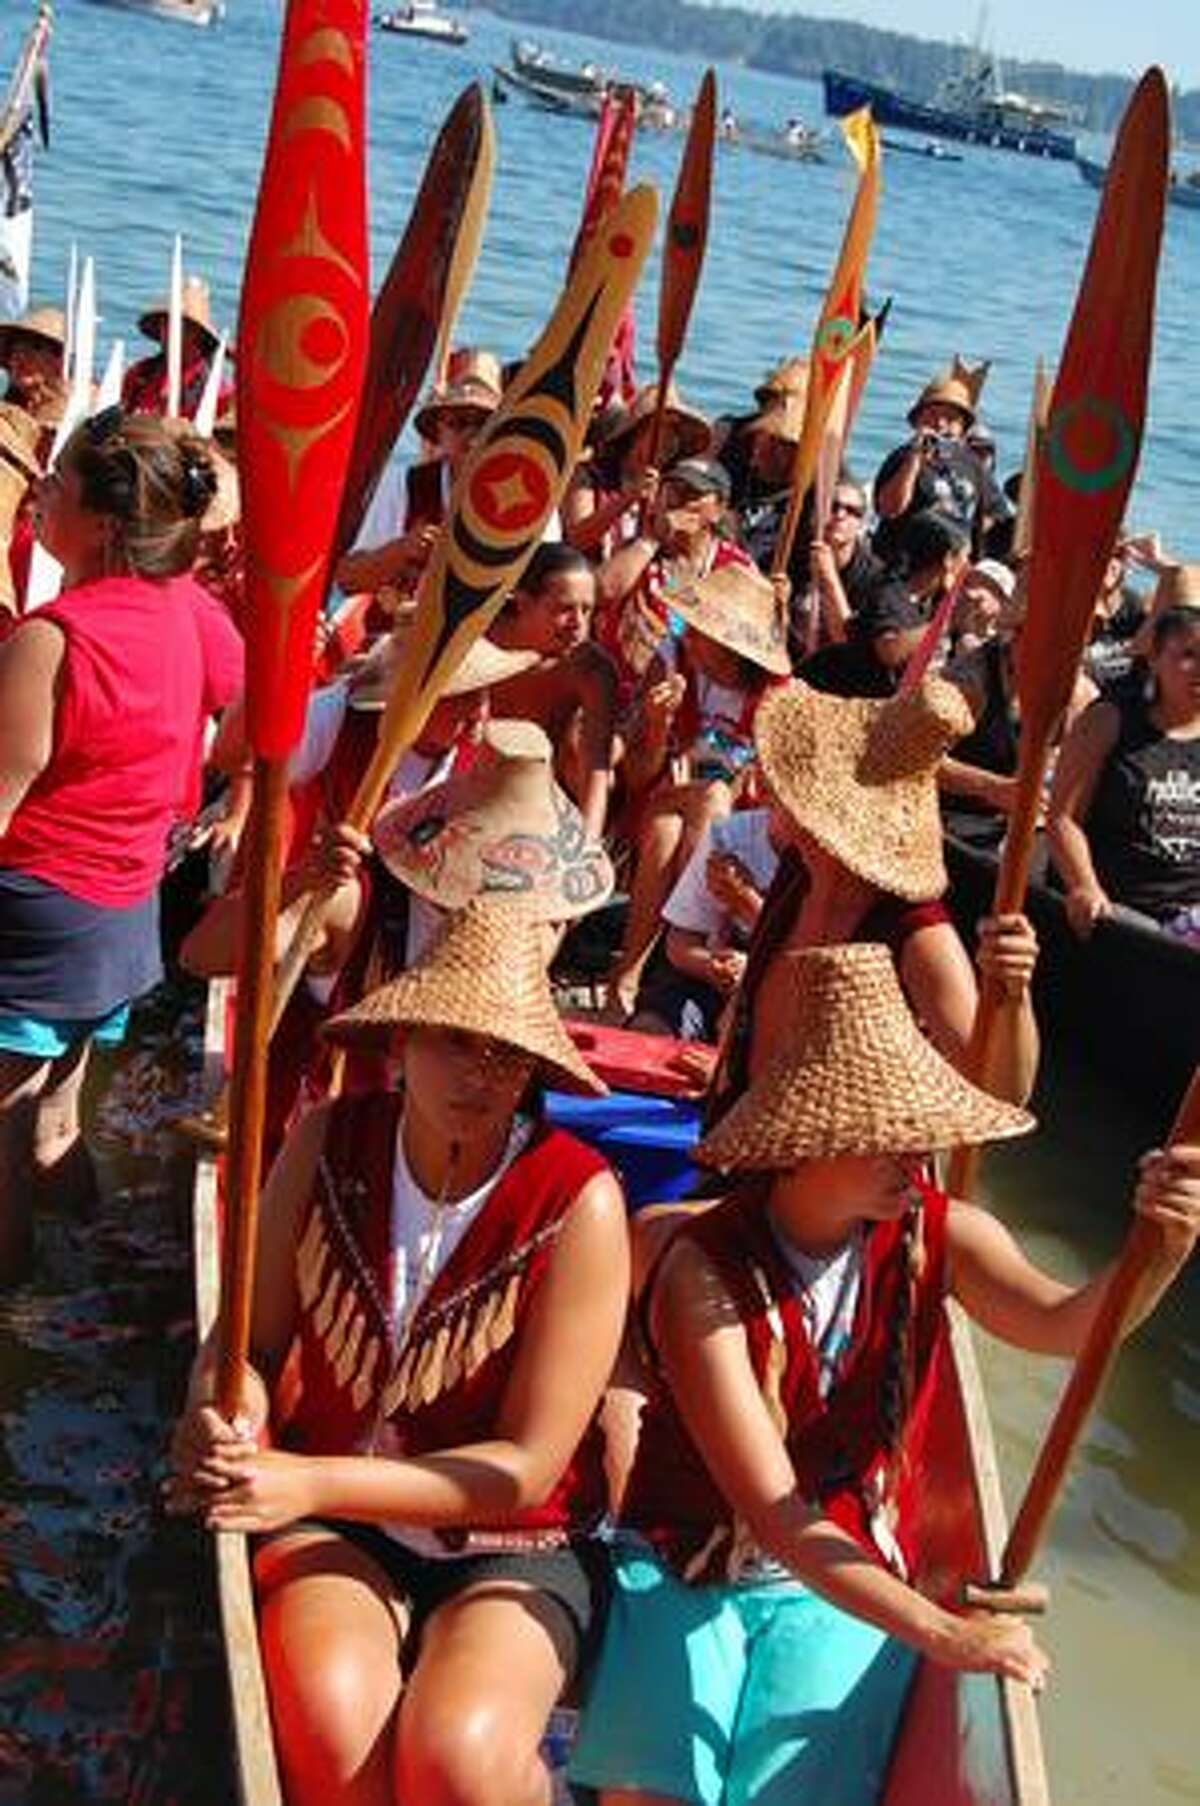 Paddlers arrive Monday afternoon at Suquamish. Native American canoes from several Northwest tribes took part in the landing, the culmination of an days-long event known as